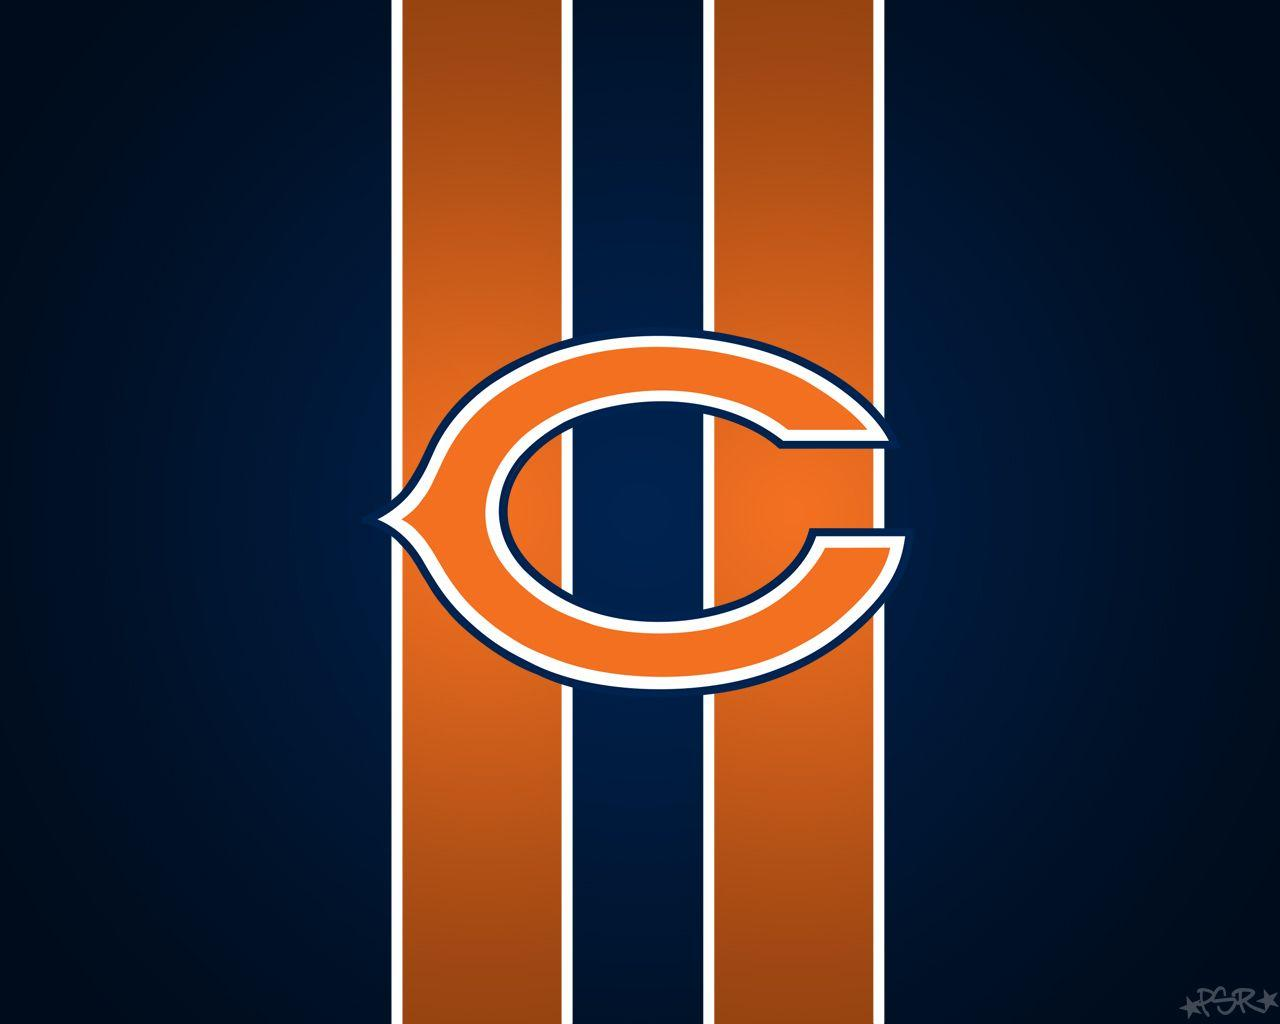 Chicago Bears Wallpapers Wallpaper | HD Wallpapers | Pinterest .